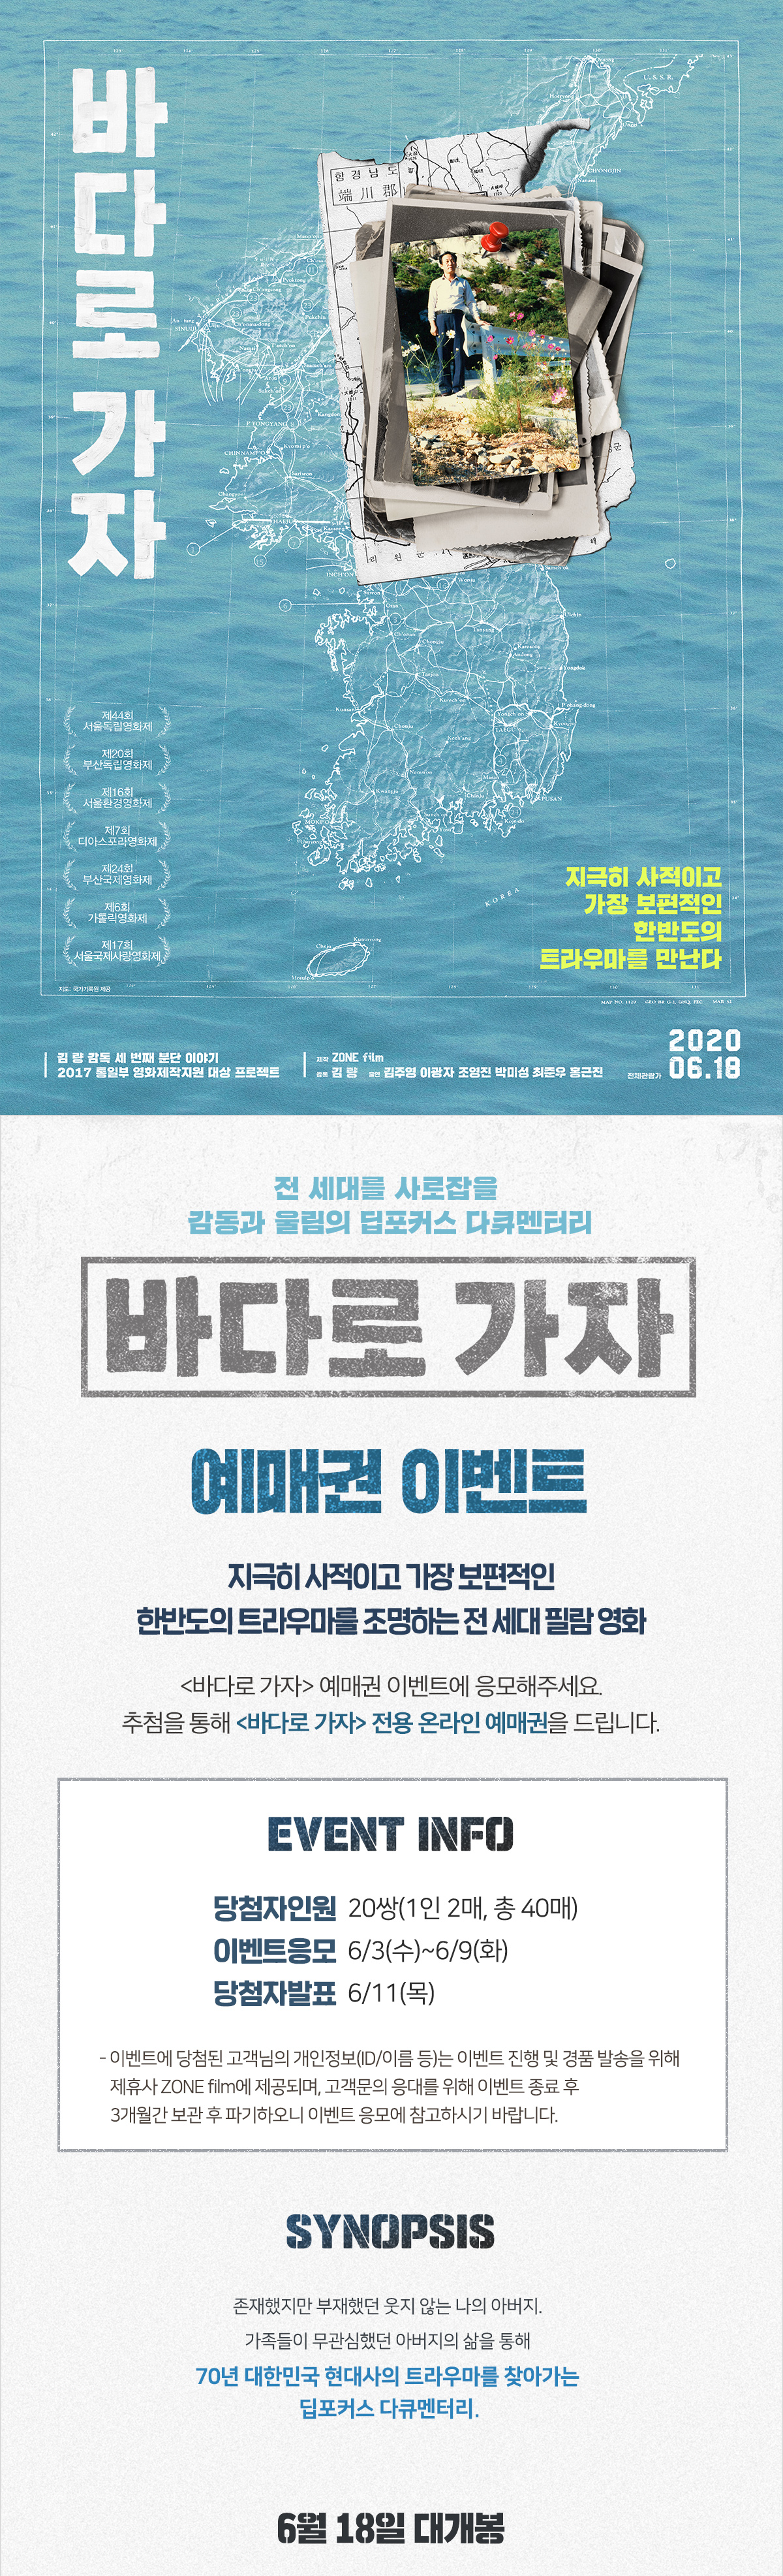 https://movie-simg.yes24.com/NYes24//event_content/preview/202006/fatherland_1200_142513.jpg